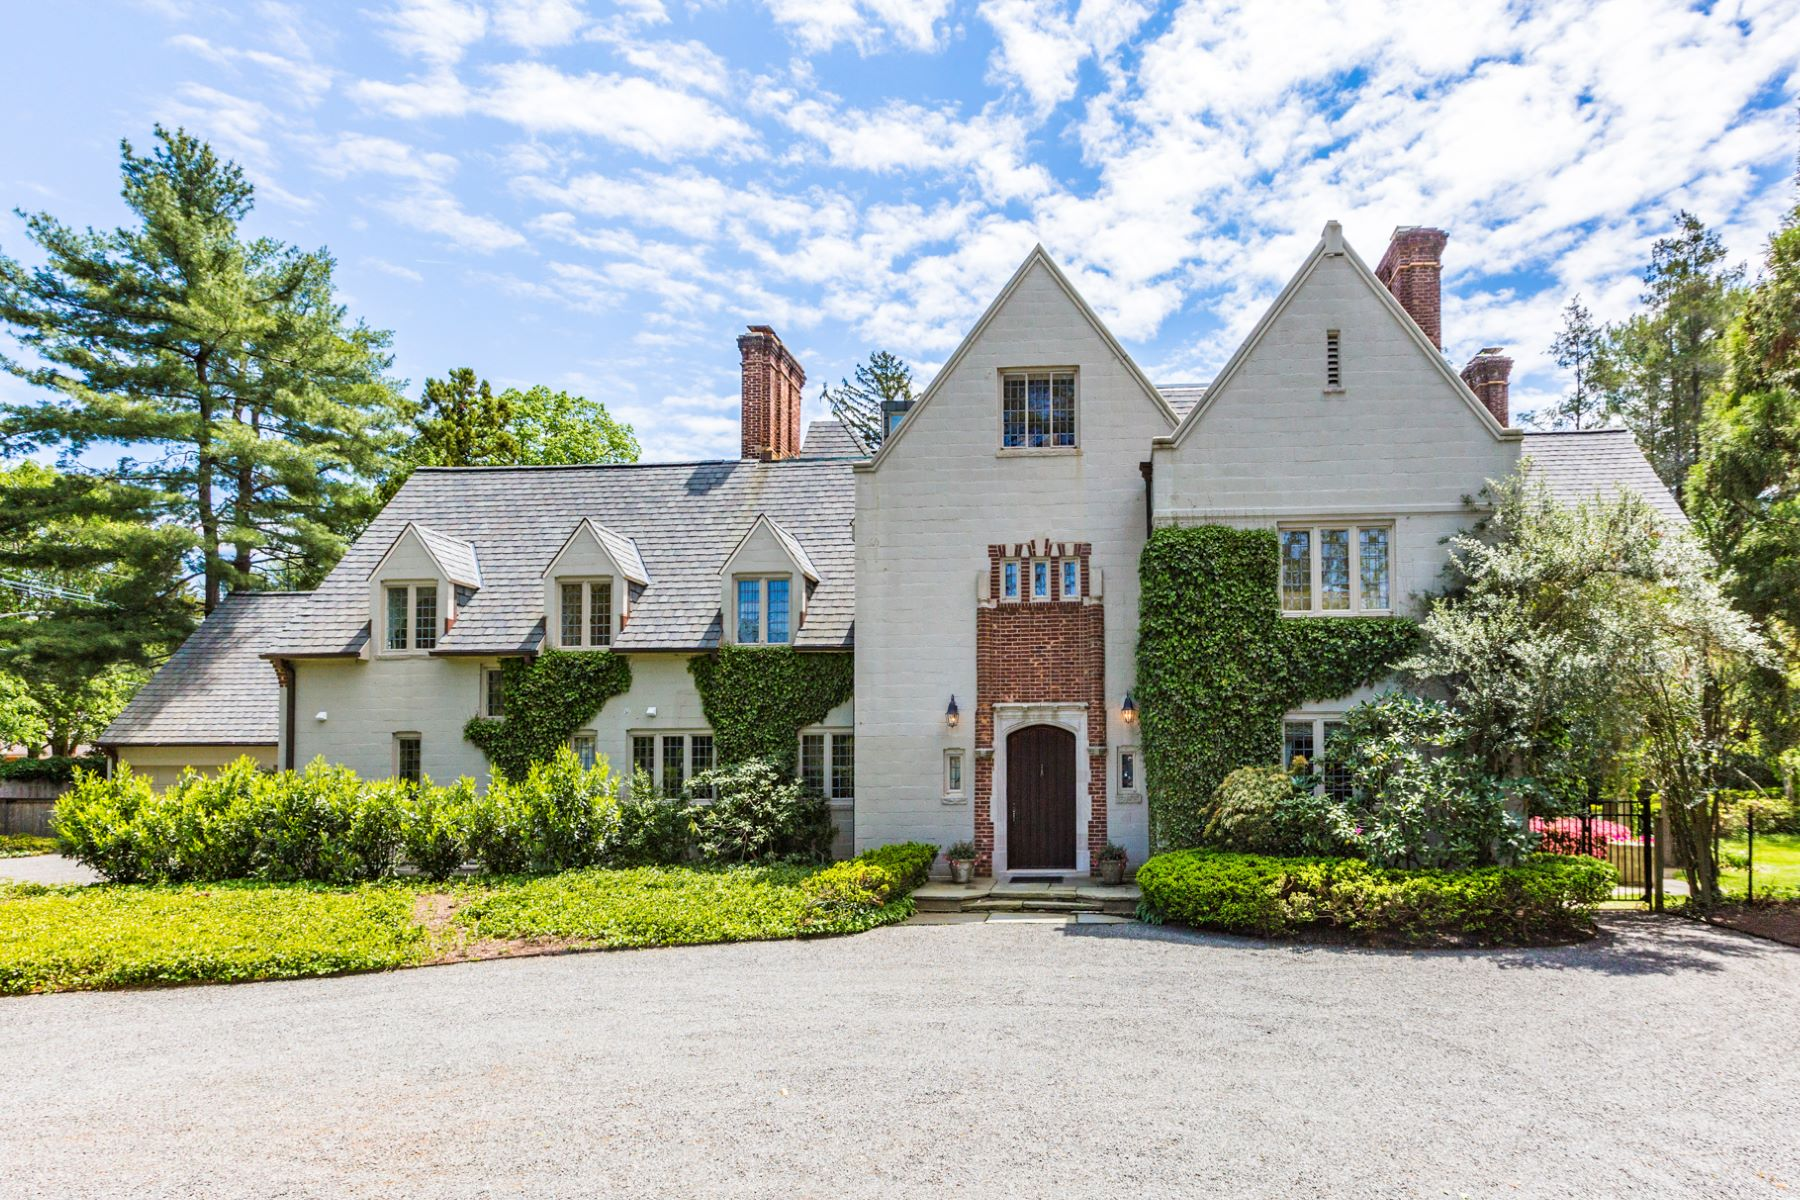 단독 가정 주택 용 매매 에 Normandy-inspired Manor in Princeton 114 Elm Road Princeton, 뉴저지, 08540 미국